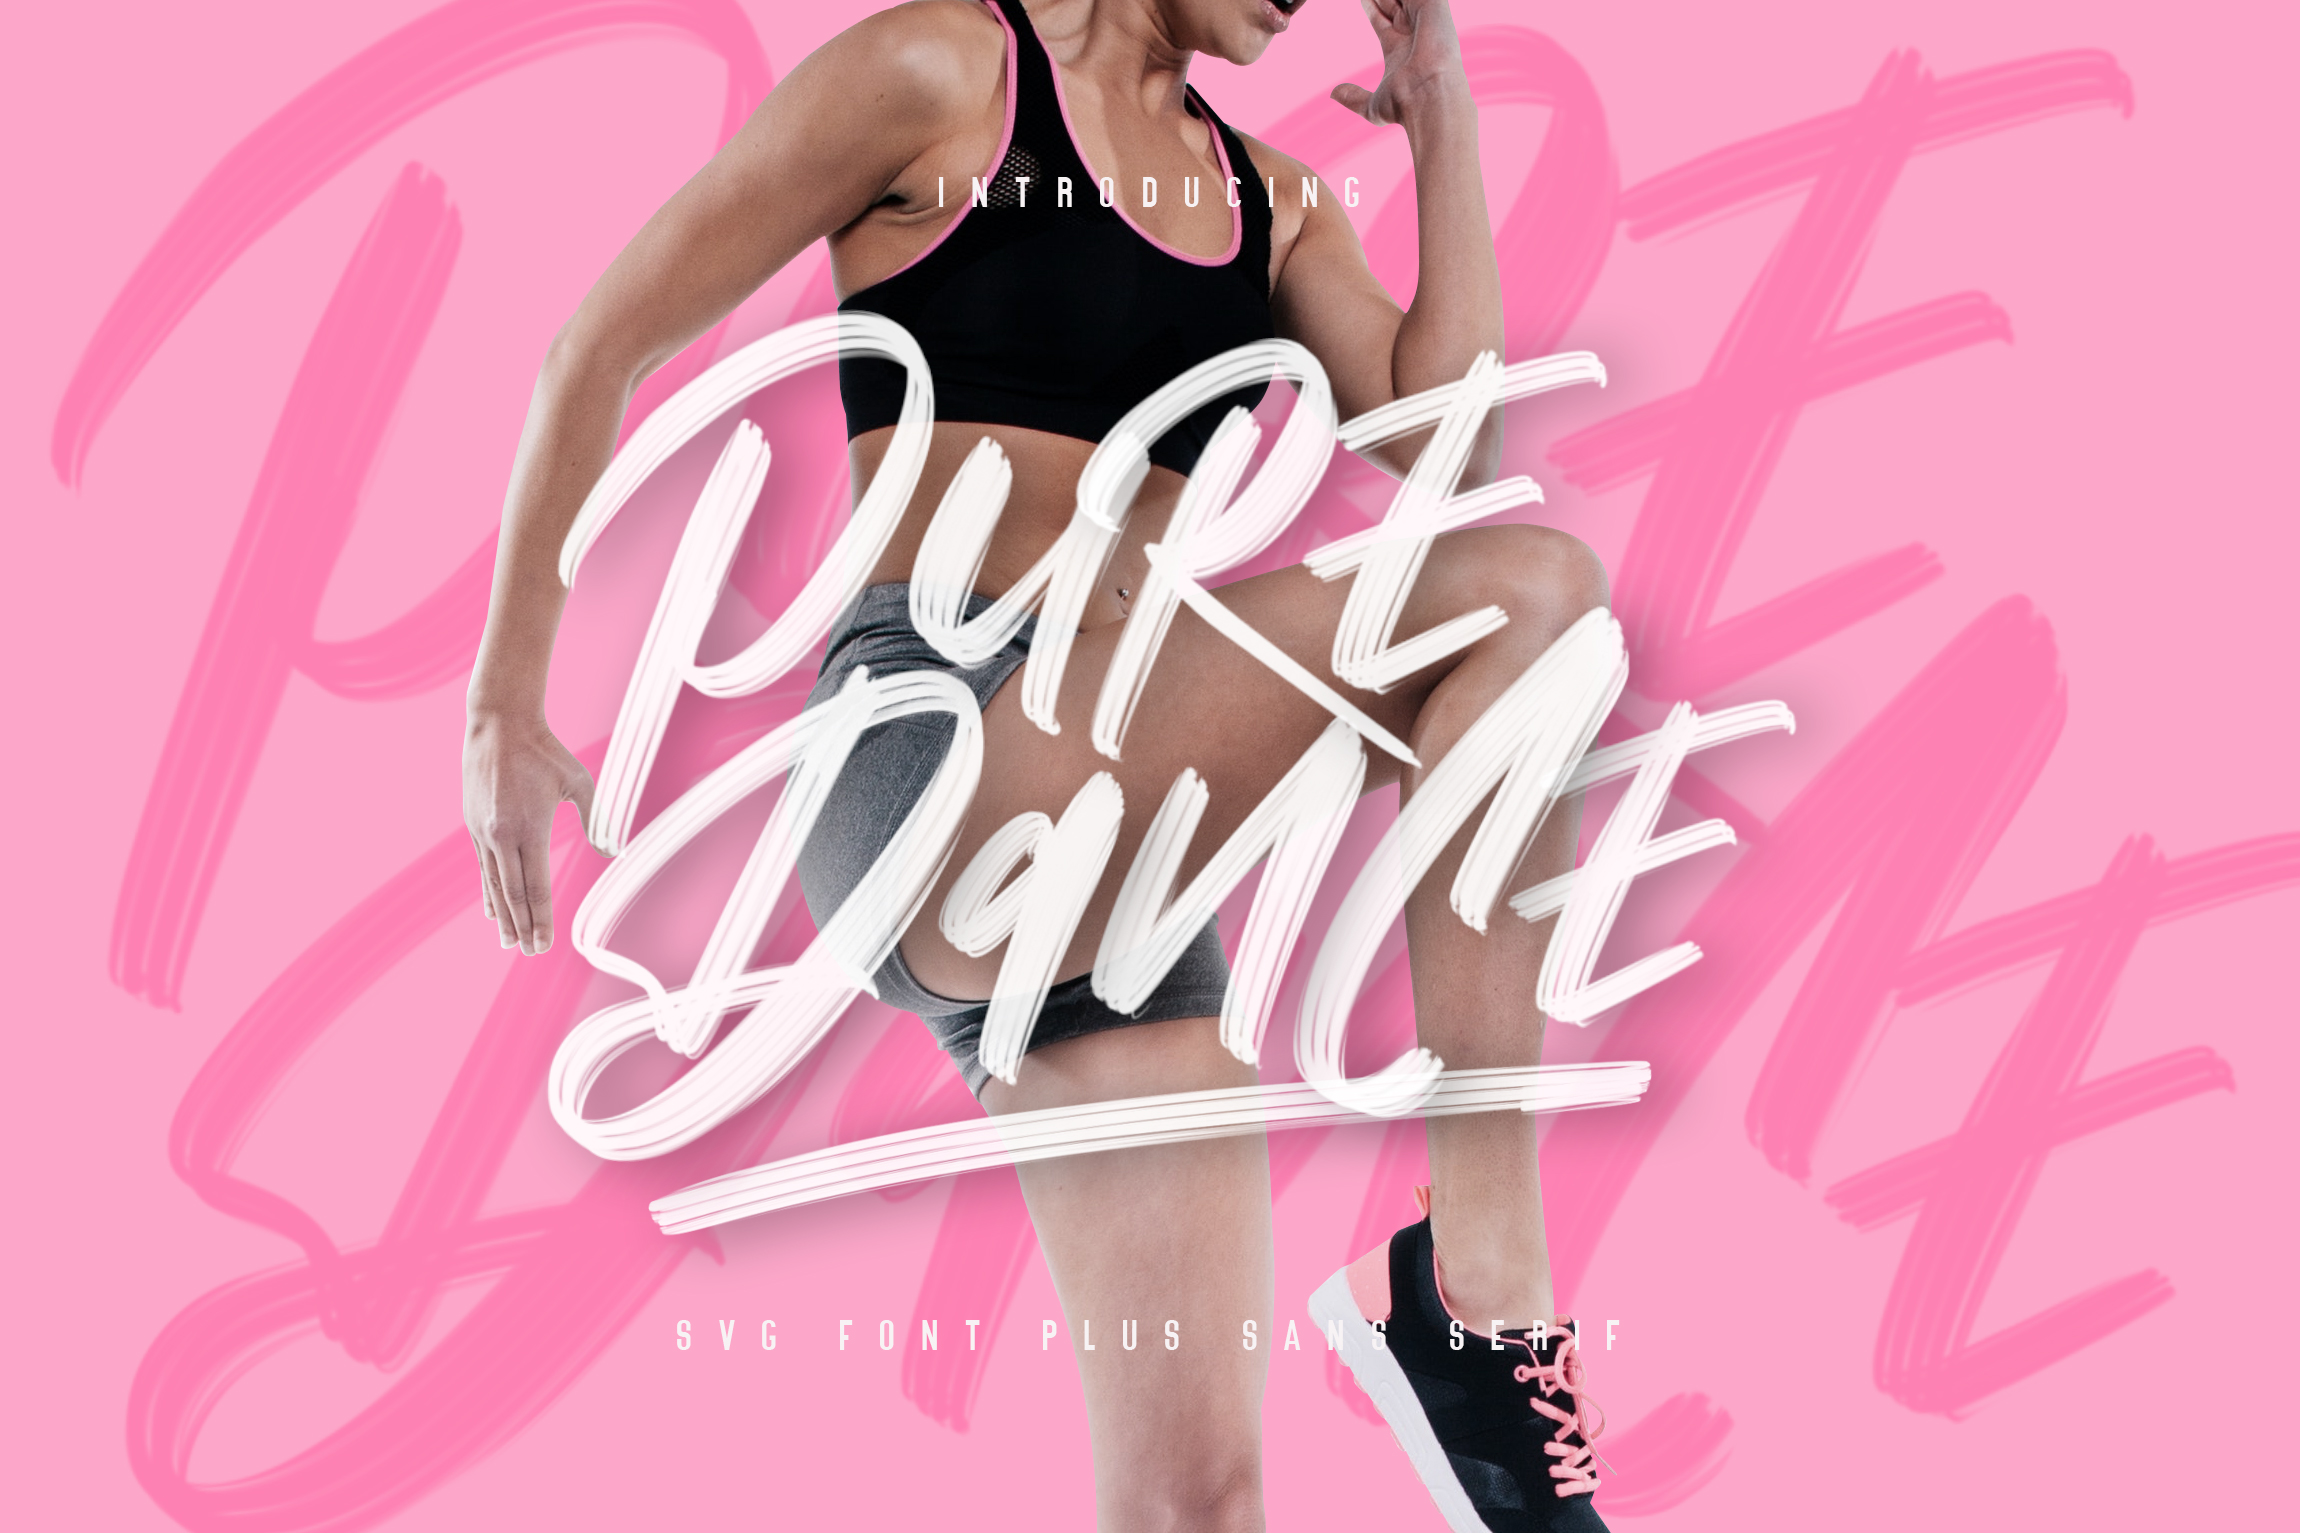 Pure Dance - SVG Font example image 1